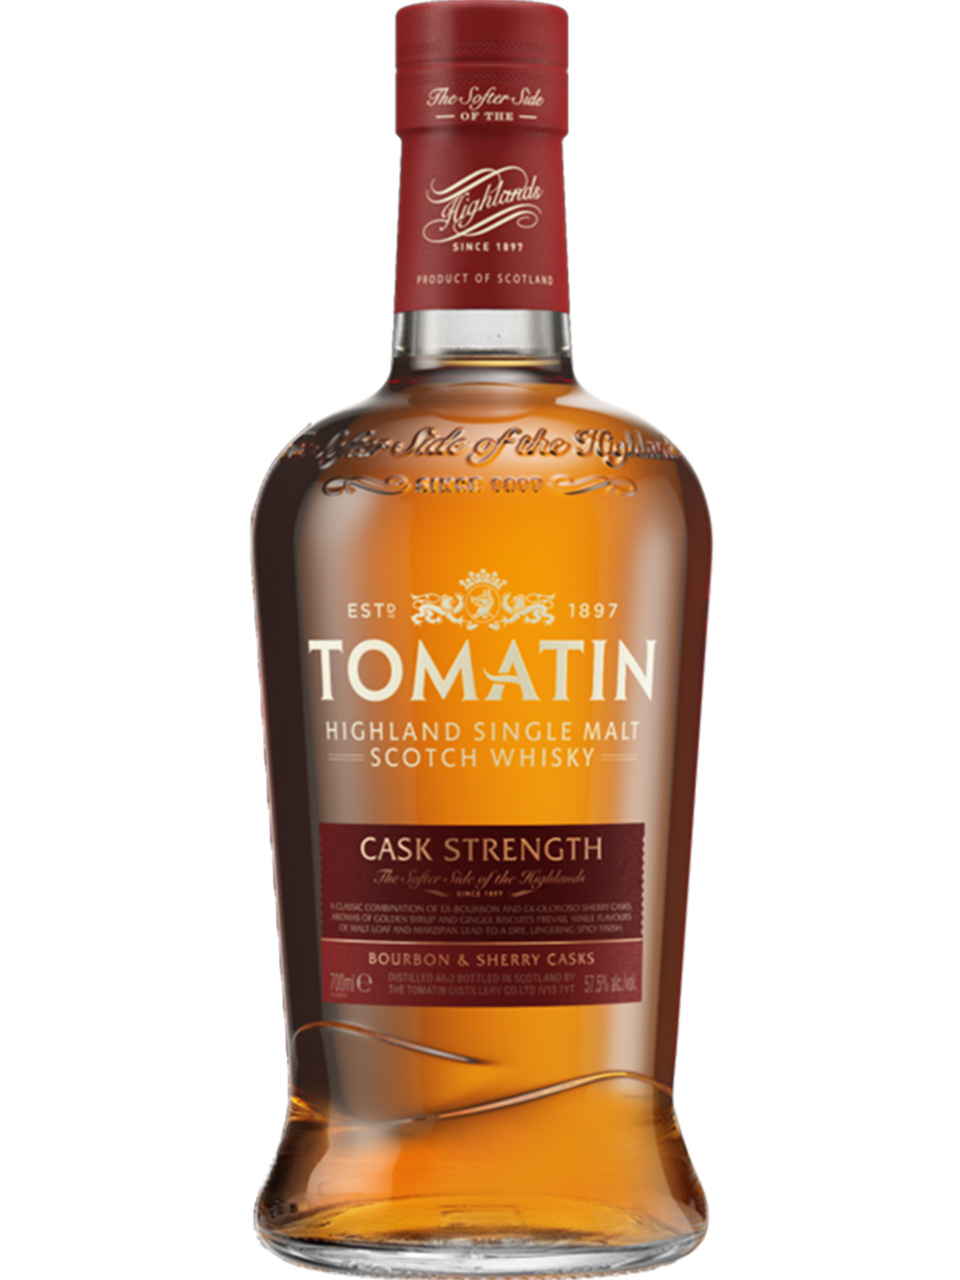 Tomatin Cask Strength Highland Single Malt Whisky